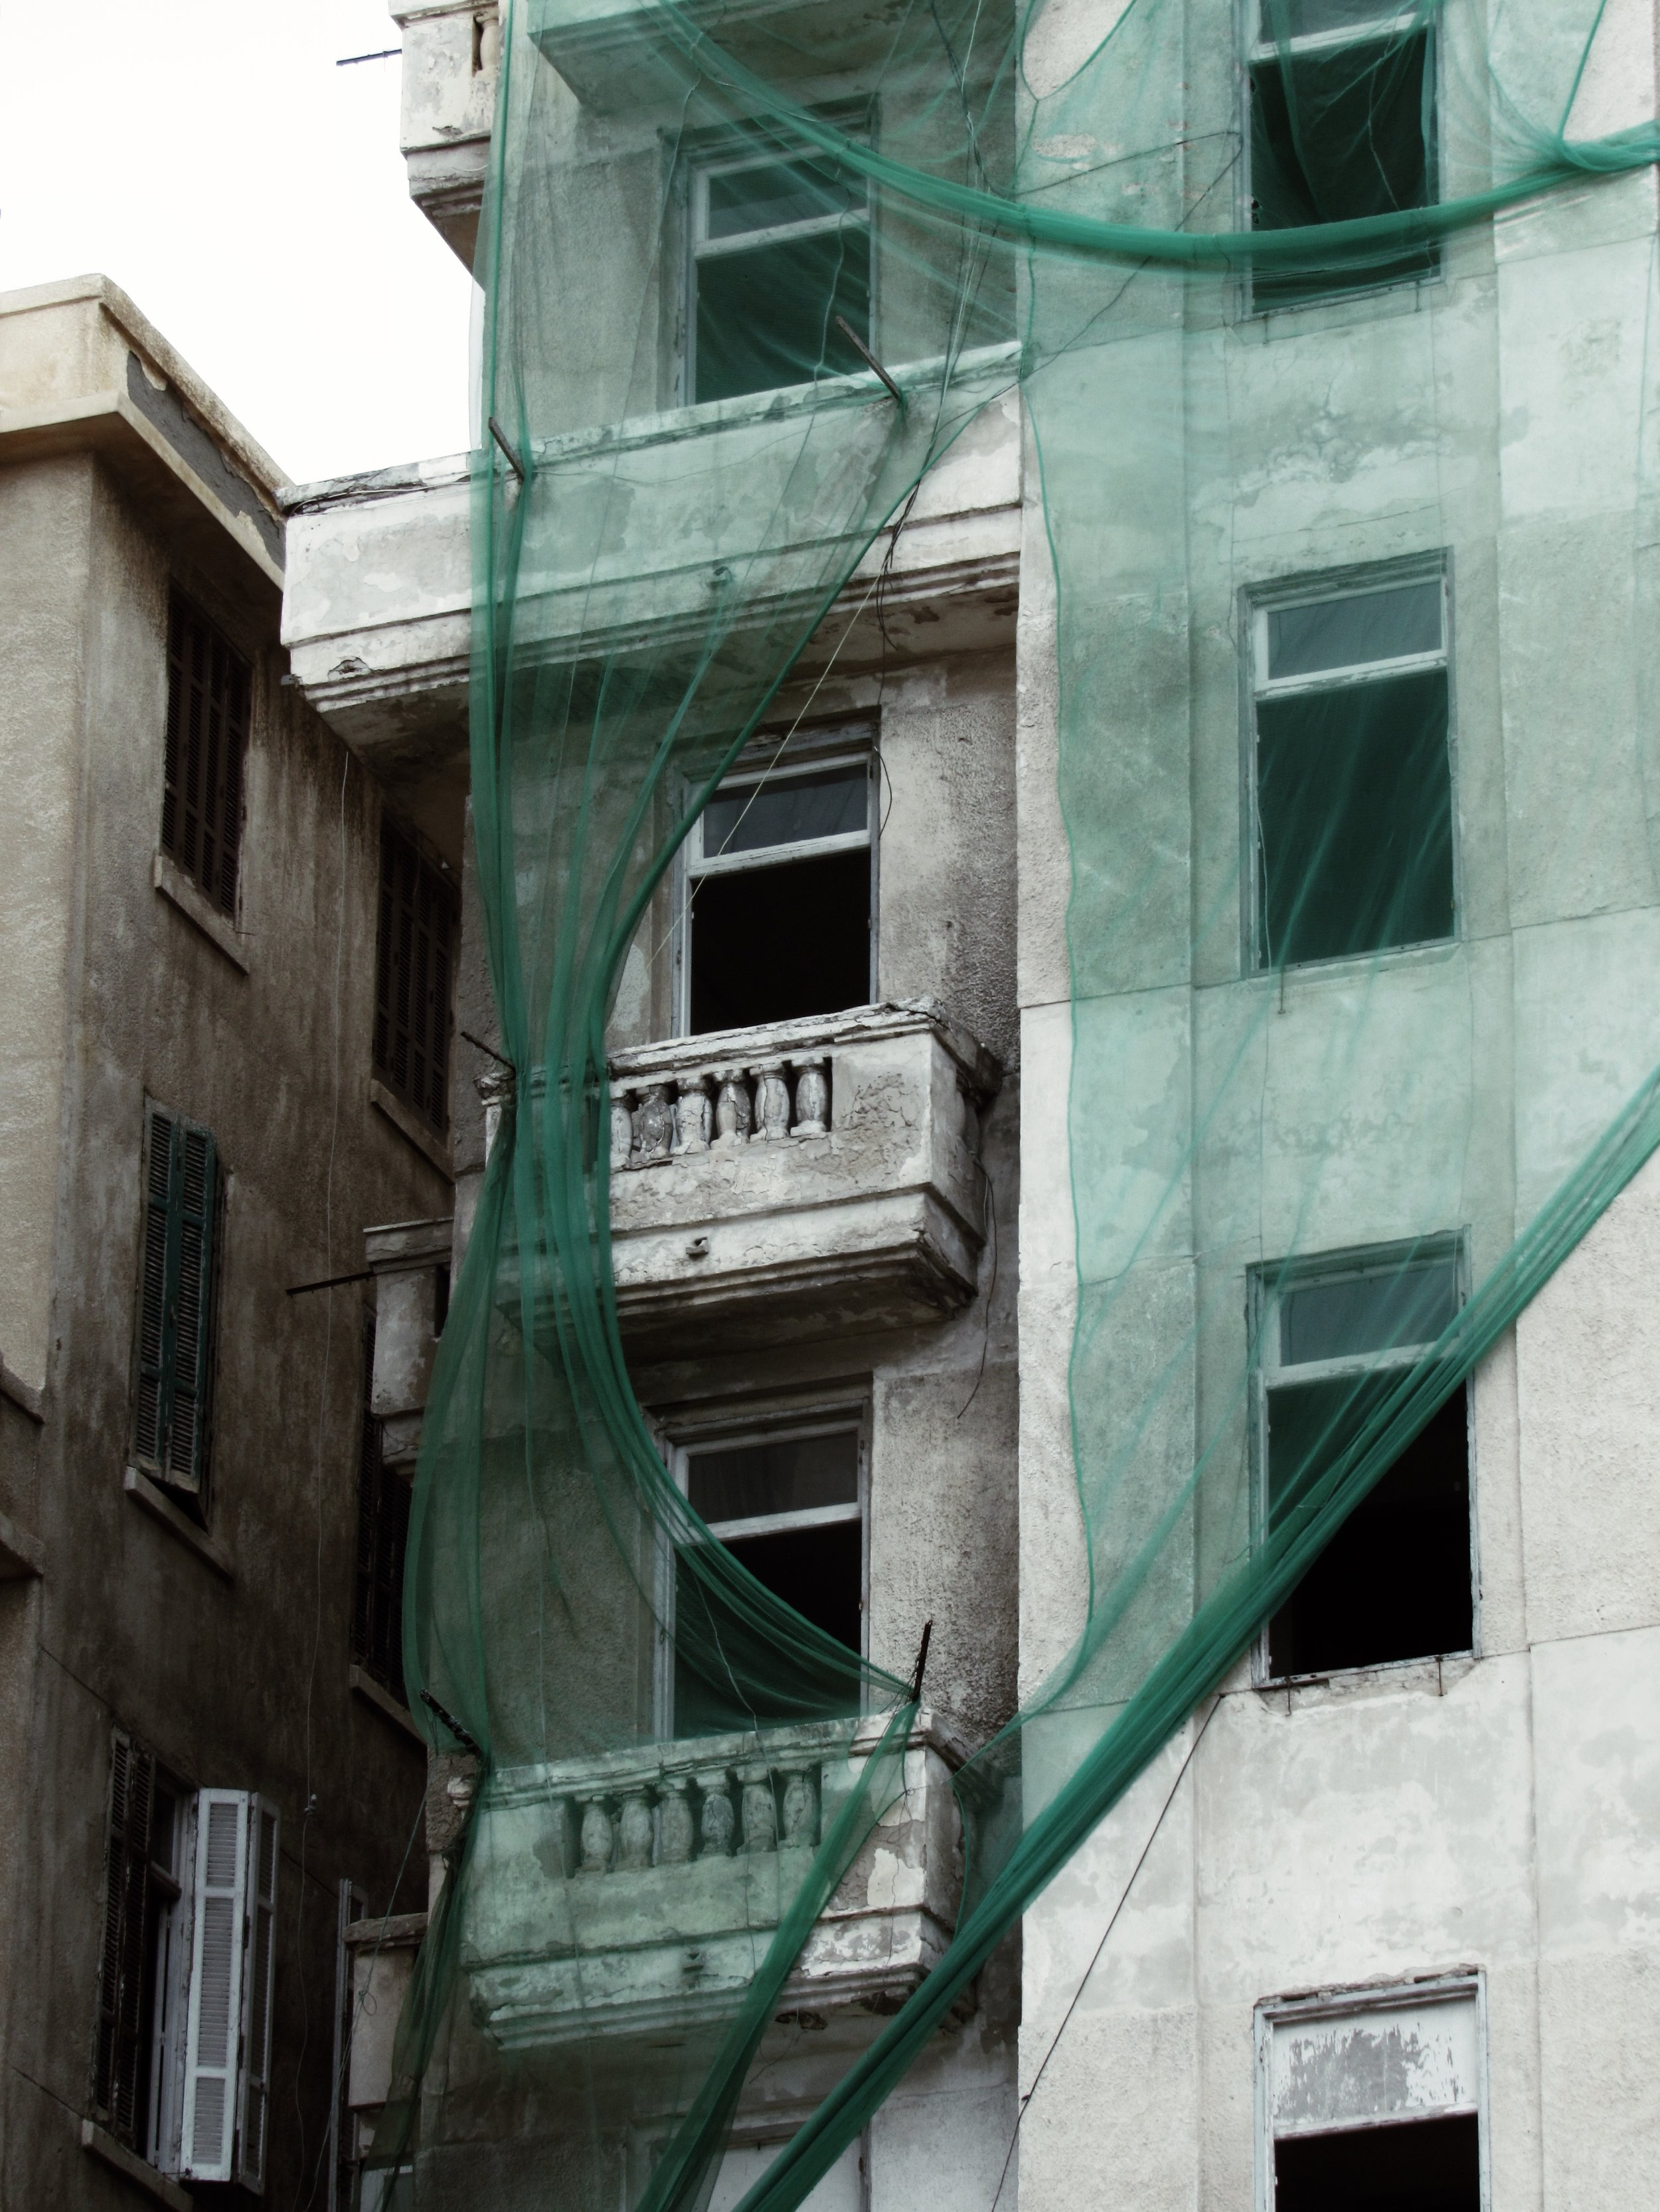 Apartment on Main Street |  December 19, 2018 Alexandria, Egypt | An aged tall apartment building oddly draped by a green thin fabric.